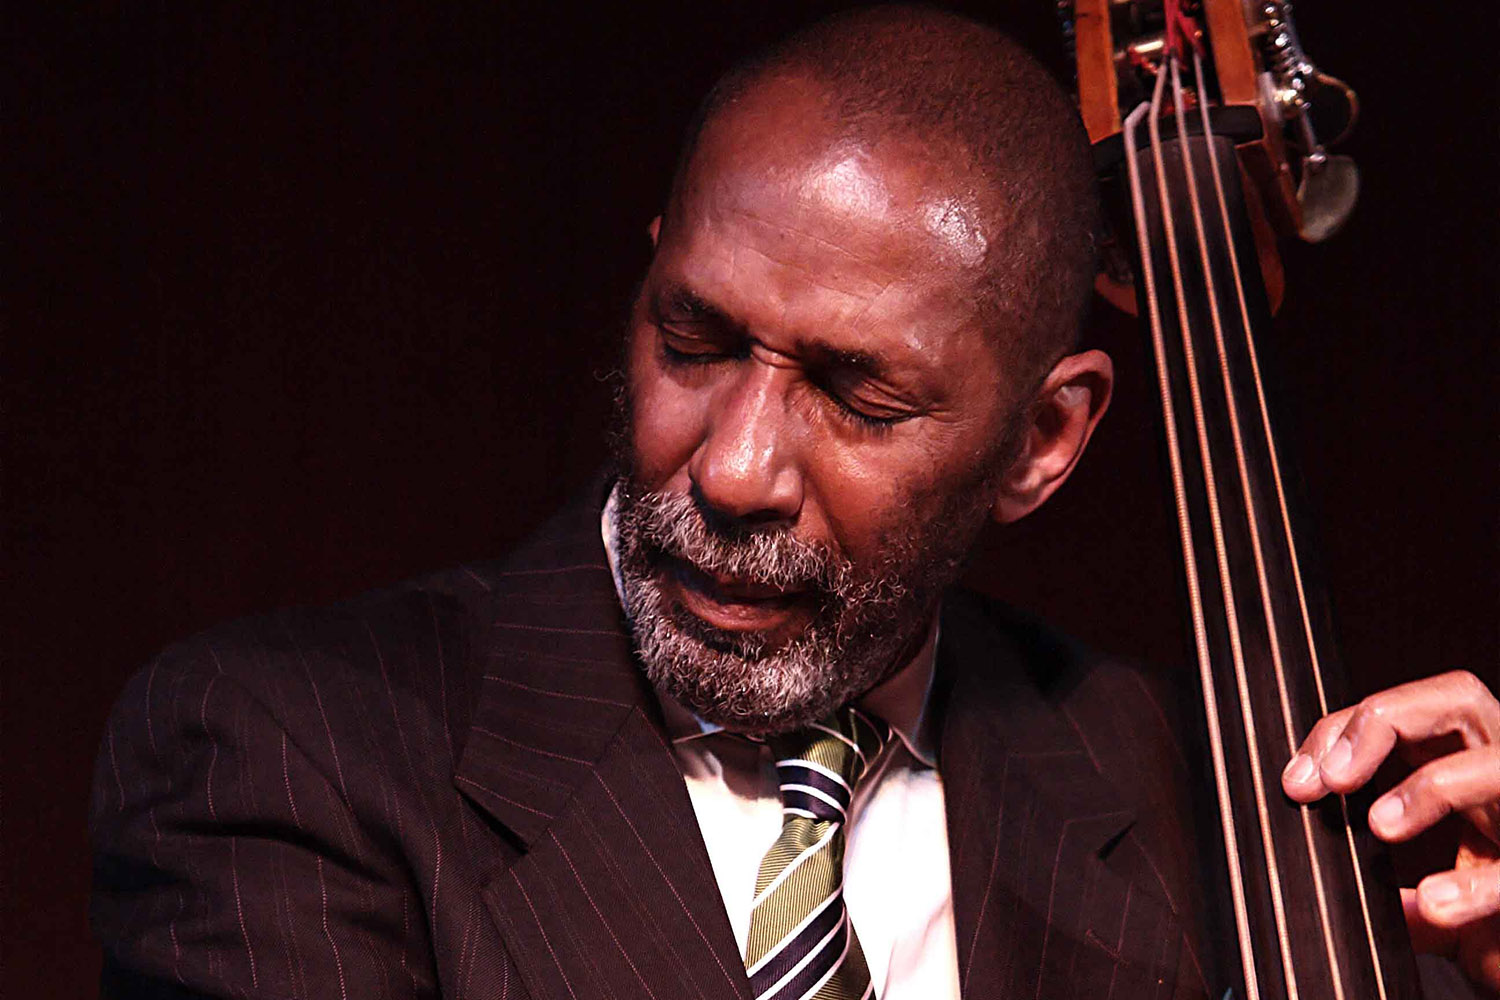 Clinic: Ron Carter - Recording with the greats